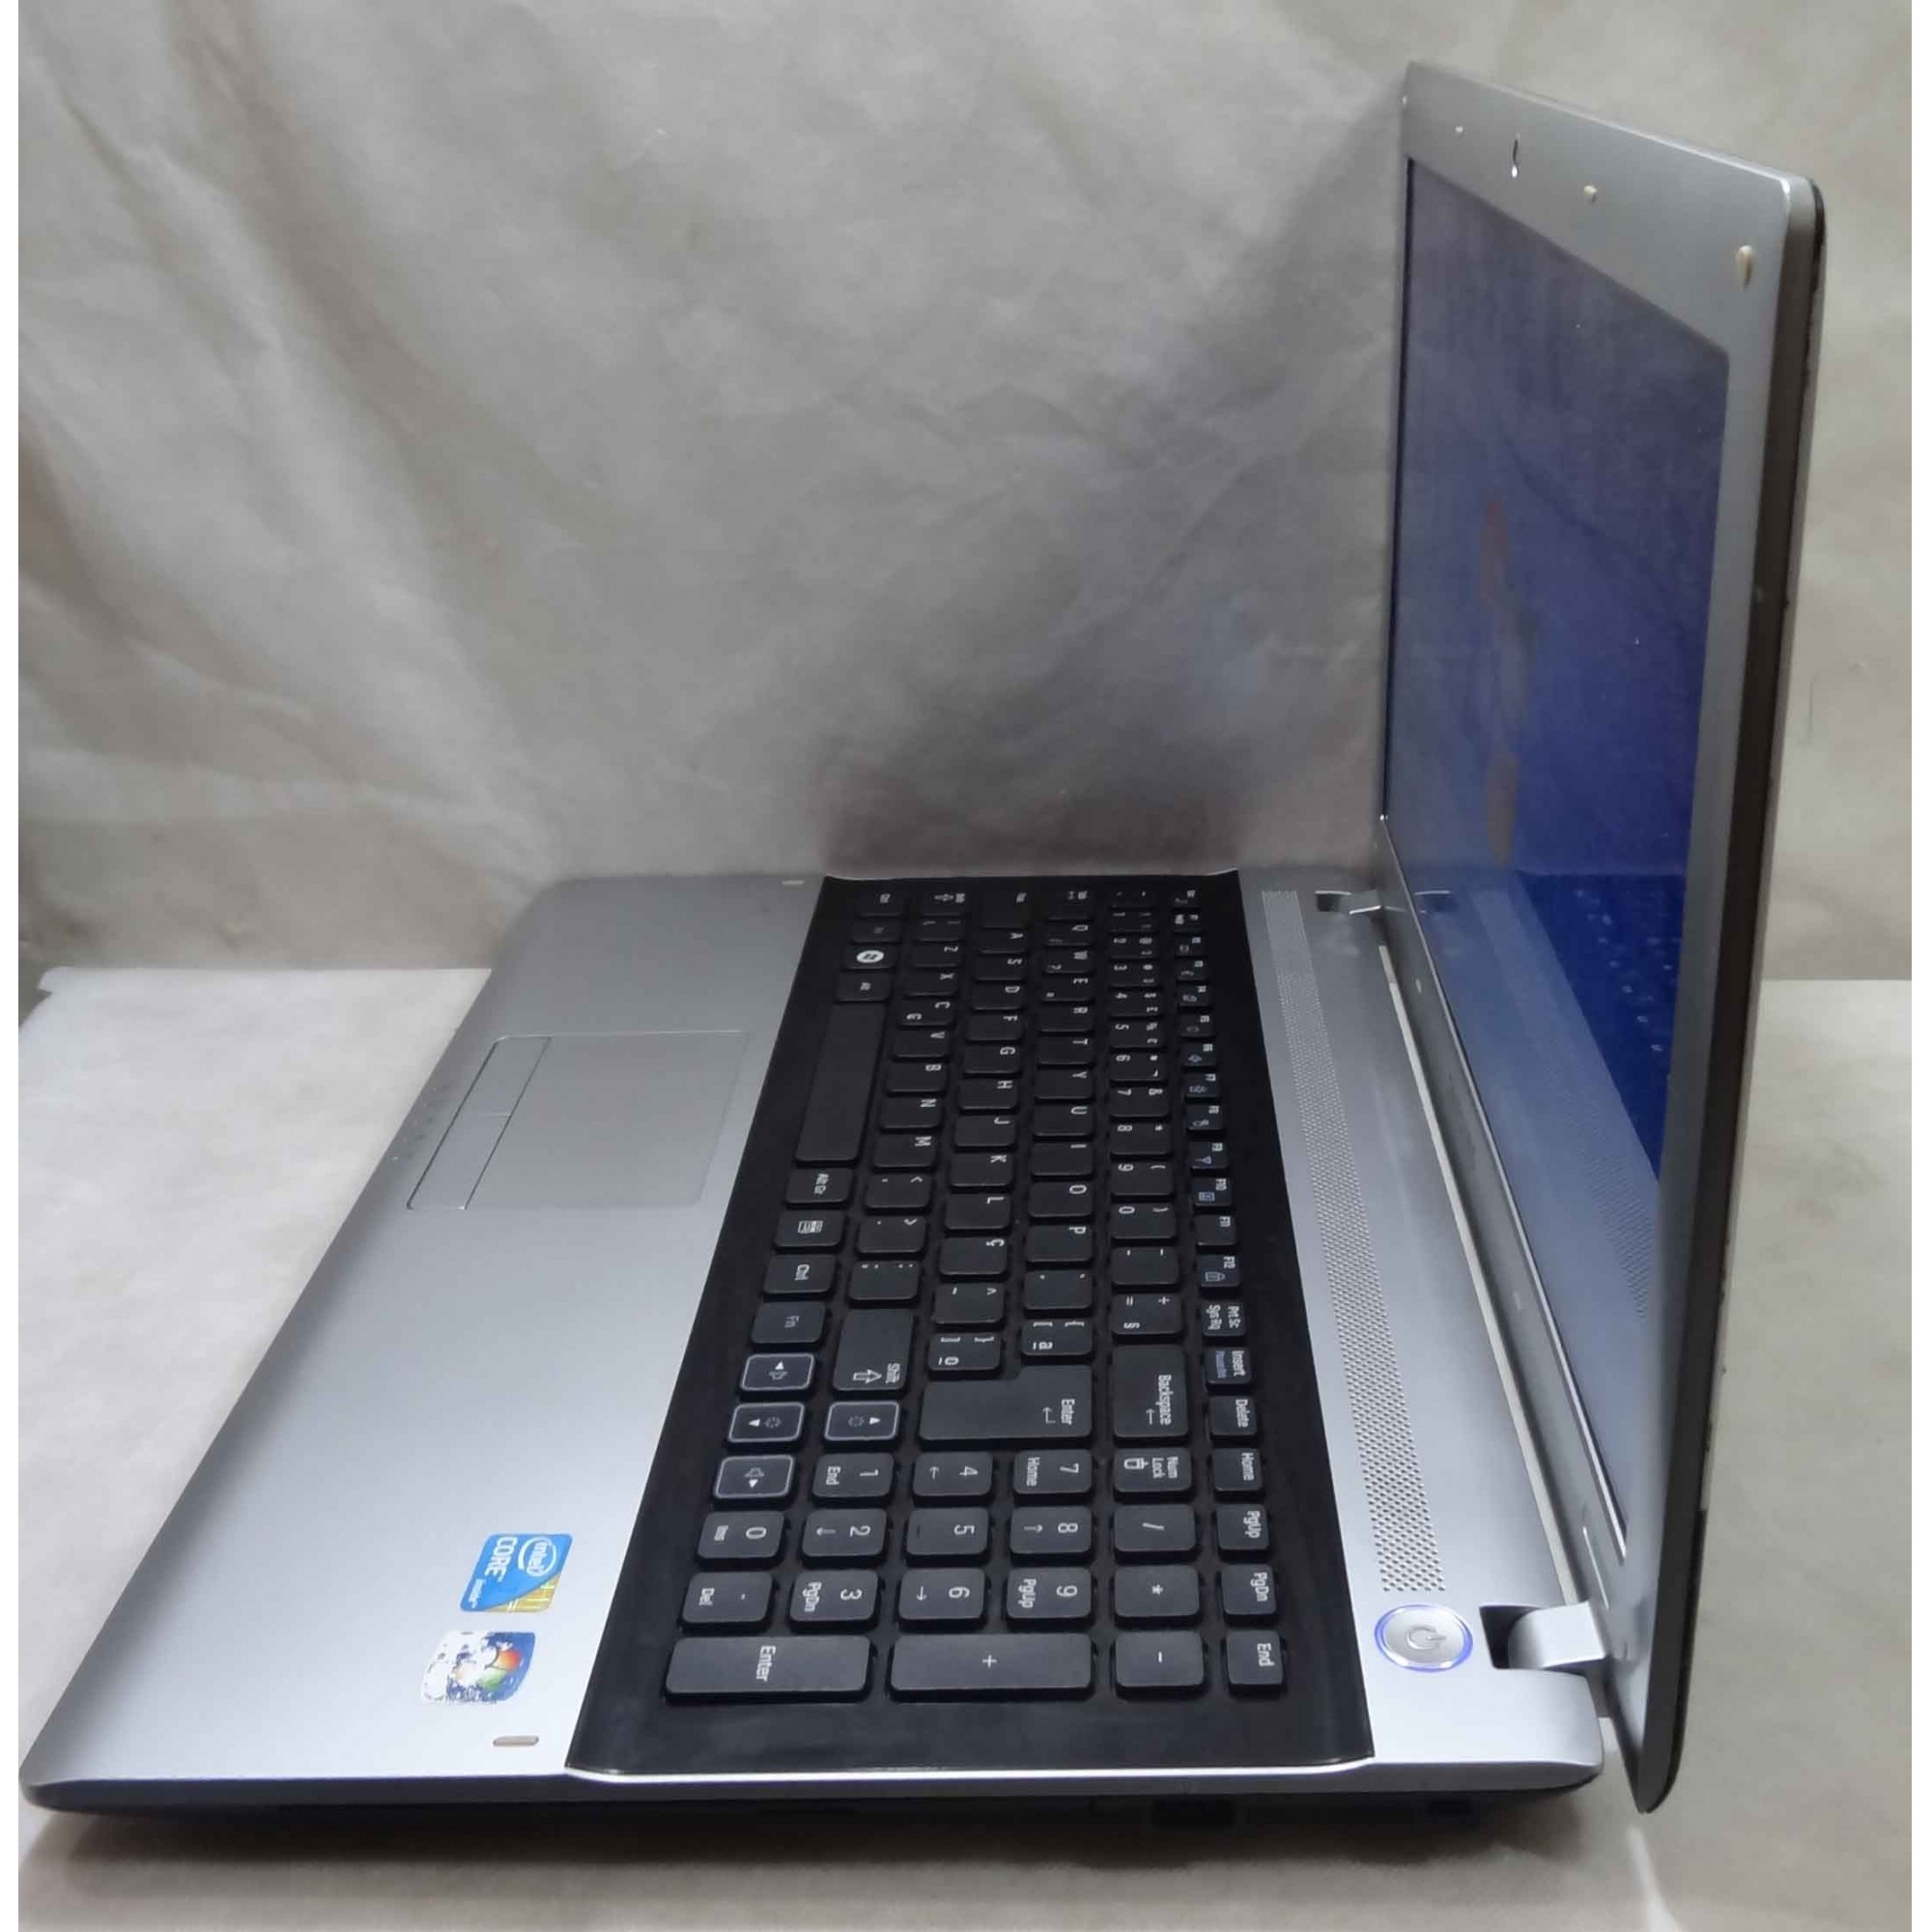 Notebook Samsung RV511 15.6'' Intel Core i3 2.5GHz 4GB HD-320GB + Alphanumérico